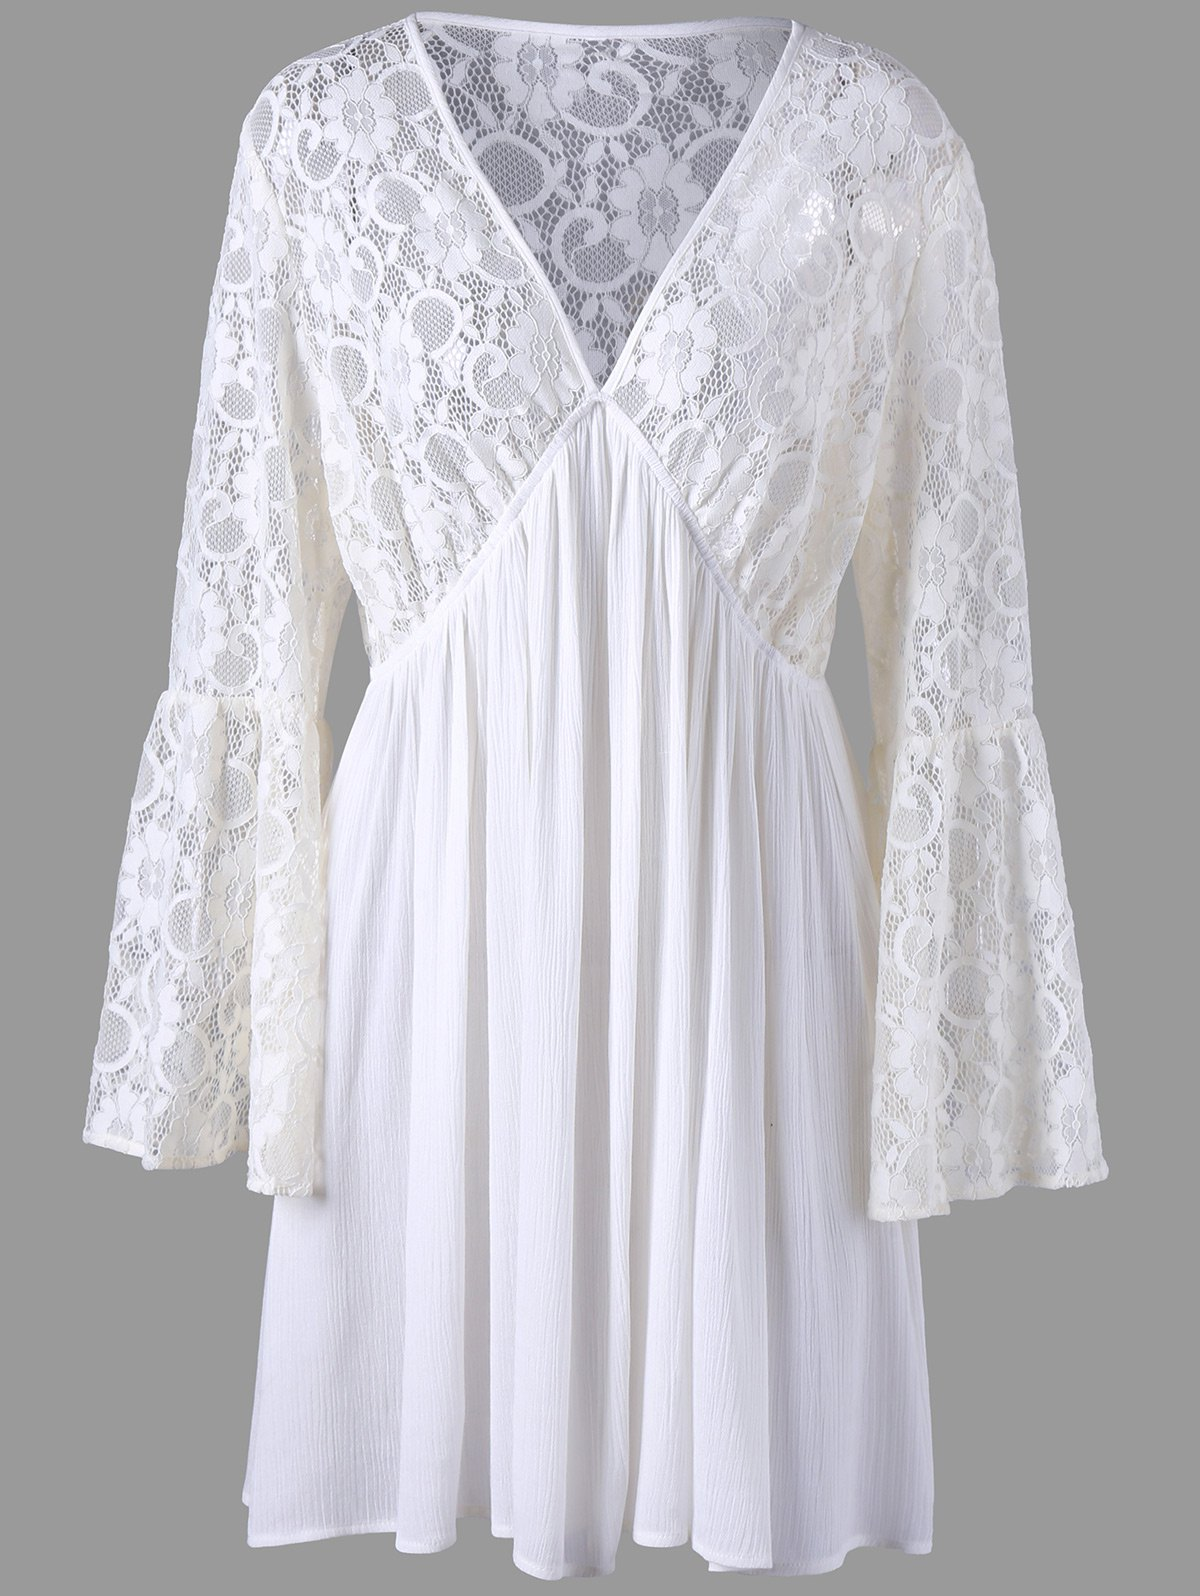 Plus Size Lace Sheer Long Sleeve Skater DressWOMEN<br><br>Size: 3XL; Color: OFF-WHITE; Style: Bohemian; Material: Rayon,Spandex; Silhouette: A-Line; Dresses Length: Mini; Neckline: Plunging Neck; Sleeve Length: Long Sleeves; Pattern Type: Floral; With Belt: No; Season: Summer; Weight: 0.3100kg; Package Contents: 1 x Dress;